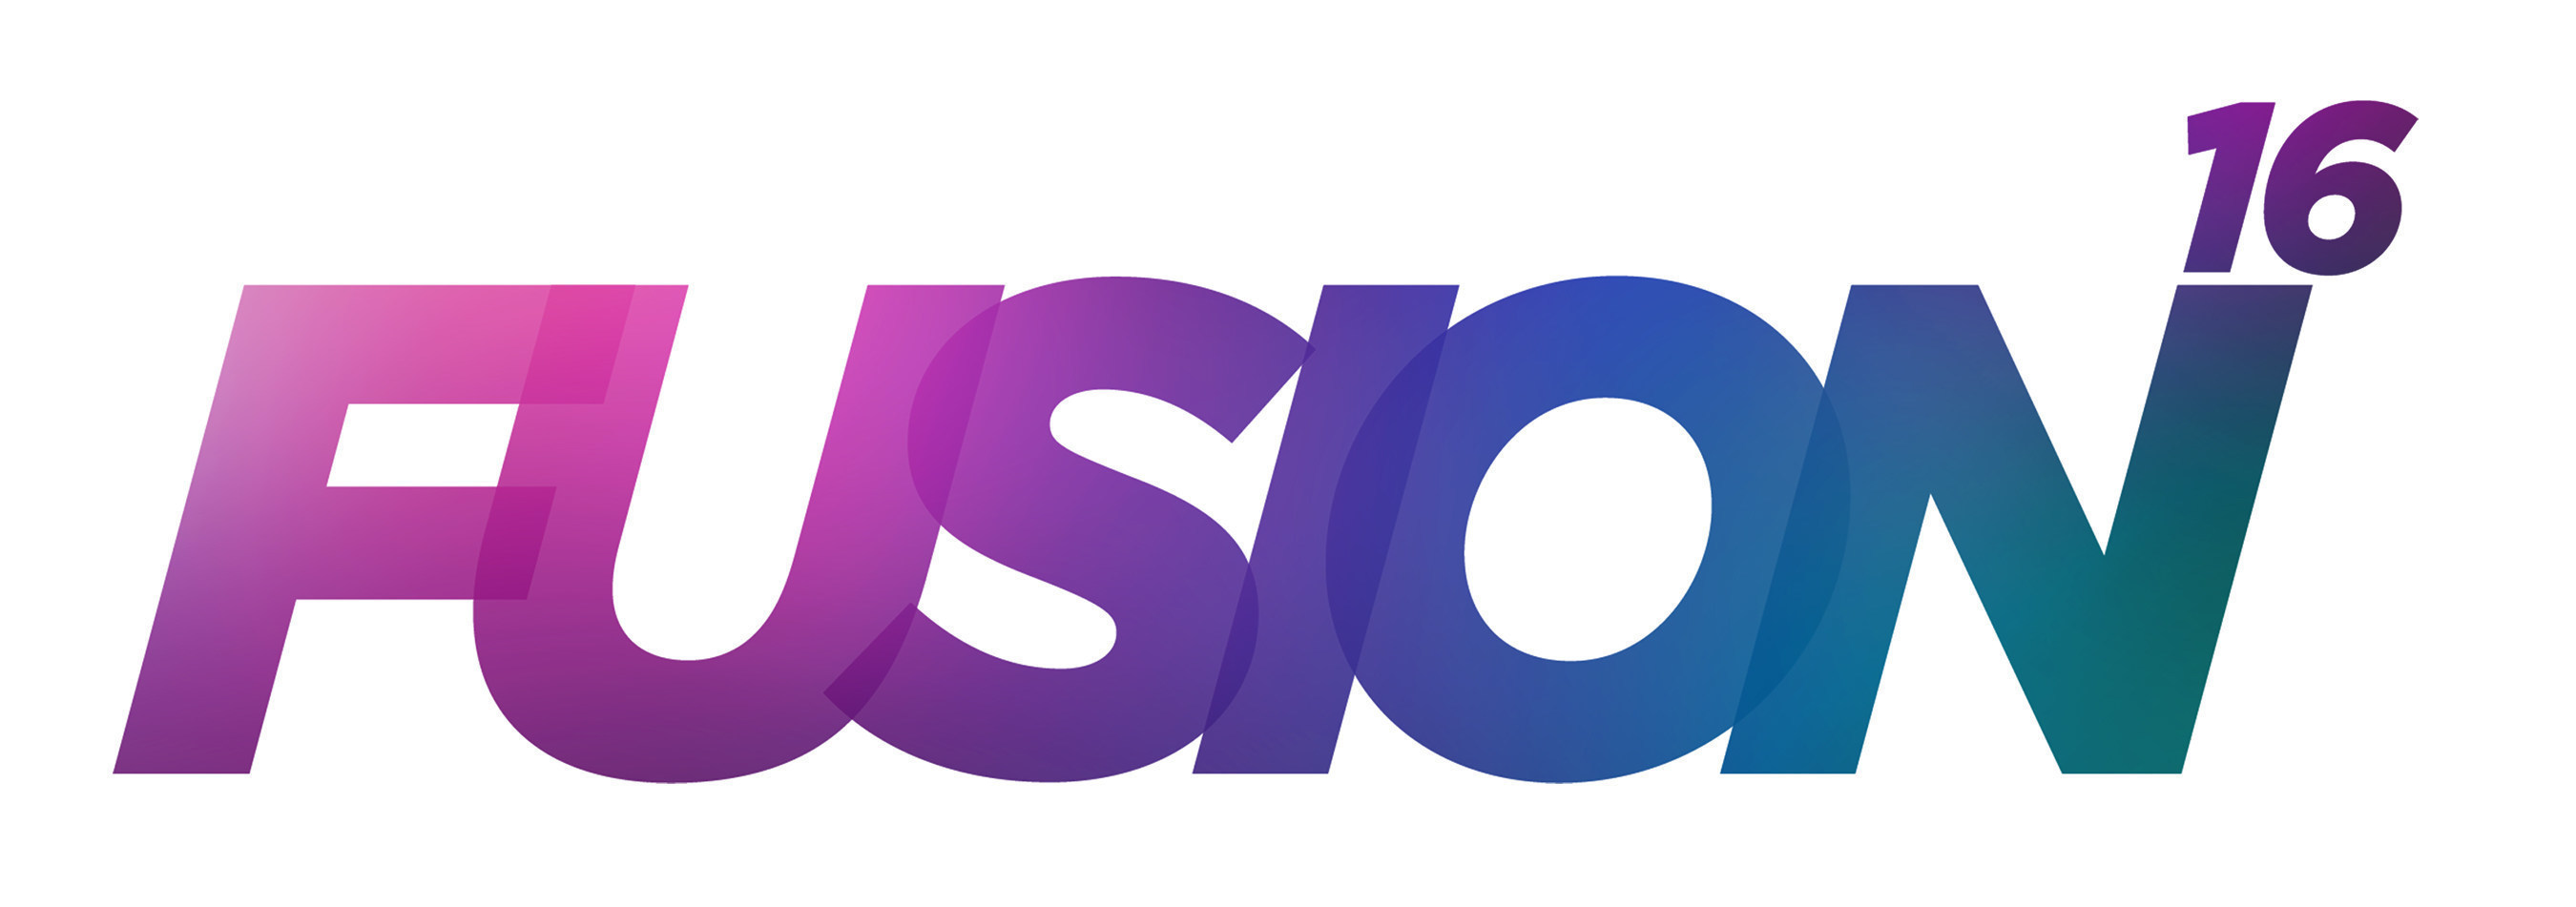 FUSION 16 will Host Five Keynote Presentations and More than 100 Breakout Sessions Led by Top IT Service Management Professionals